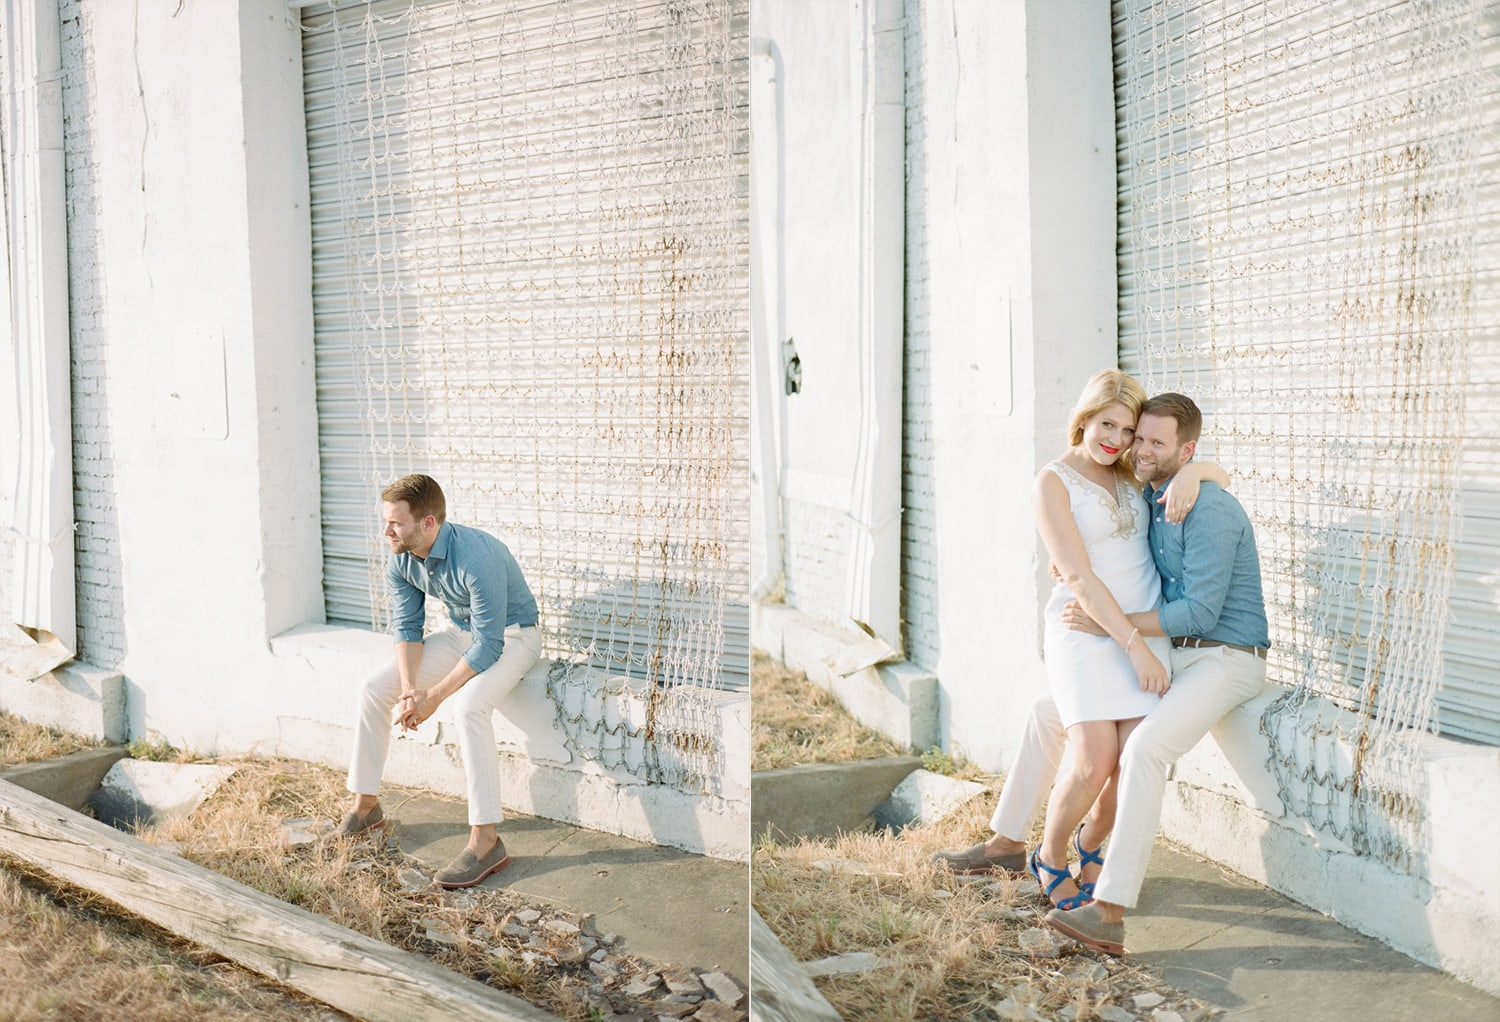 DEEP_ELLUM_TX_FILM_ENGAGEMENT_SHOOT__MATTHEW_MOORE_PHOTOGRAPHY_PAN_004.jpg